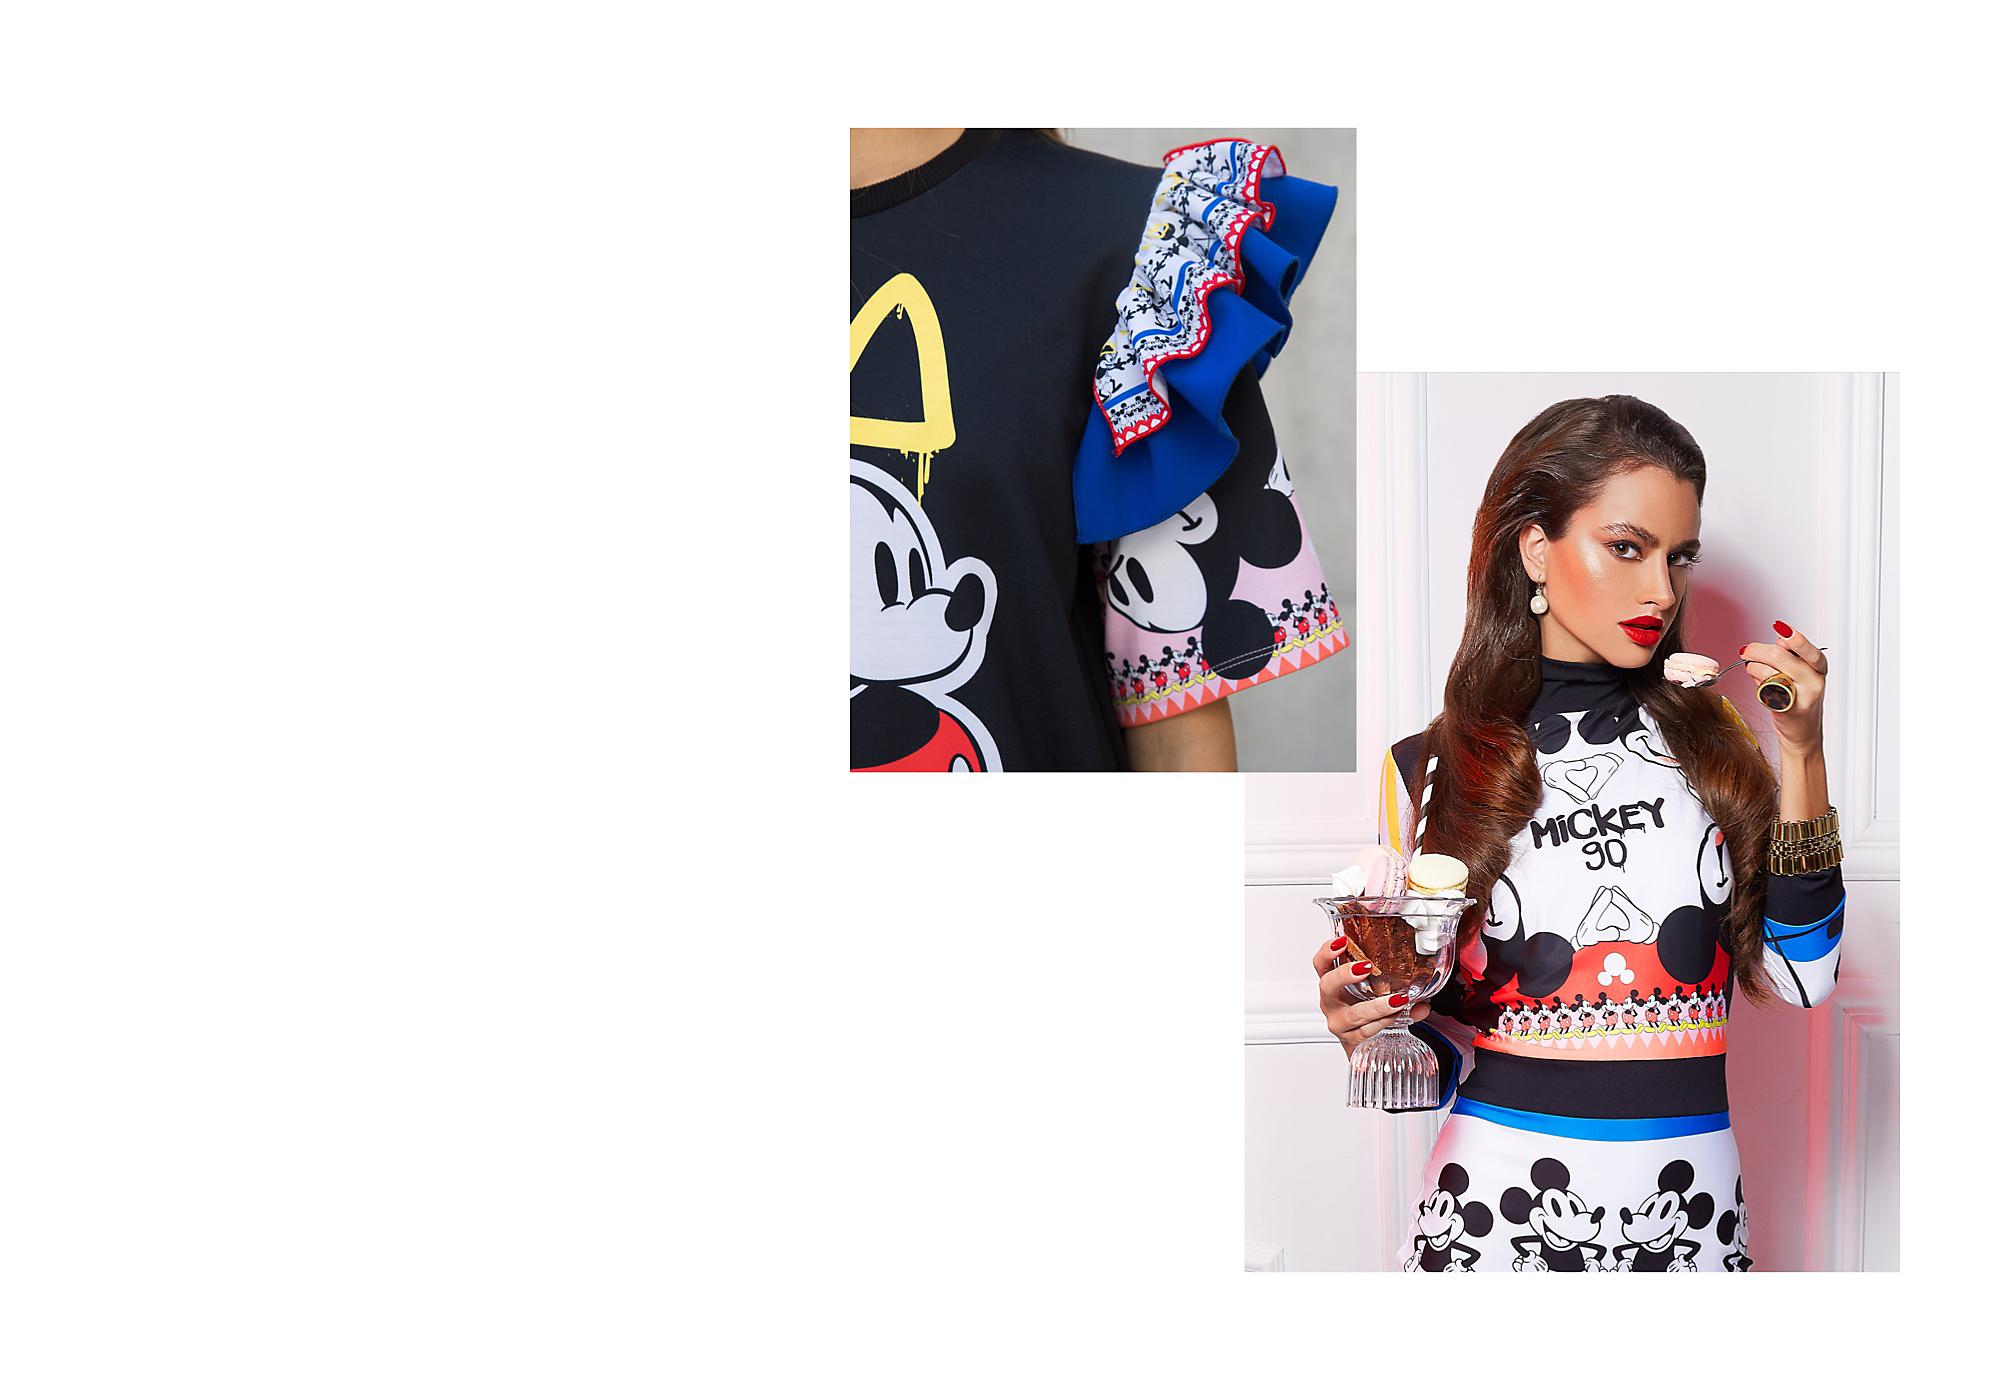 Fresh and Innovative Fashion Hungarian fashion brand Sugarbird has team up with Disney to celebrate Mickey's 90th!